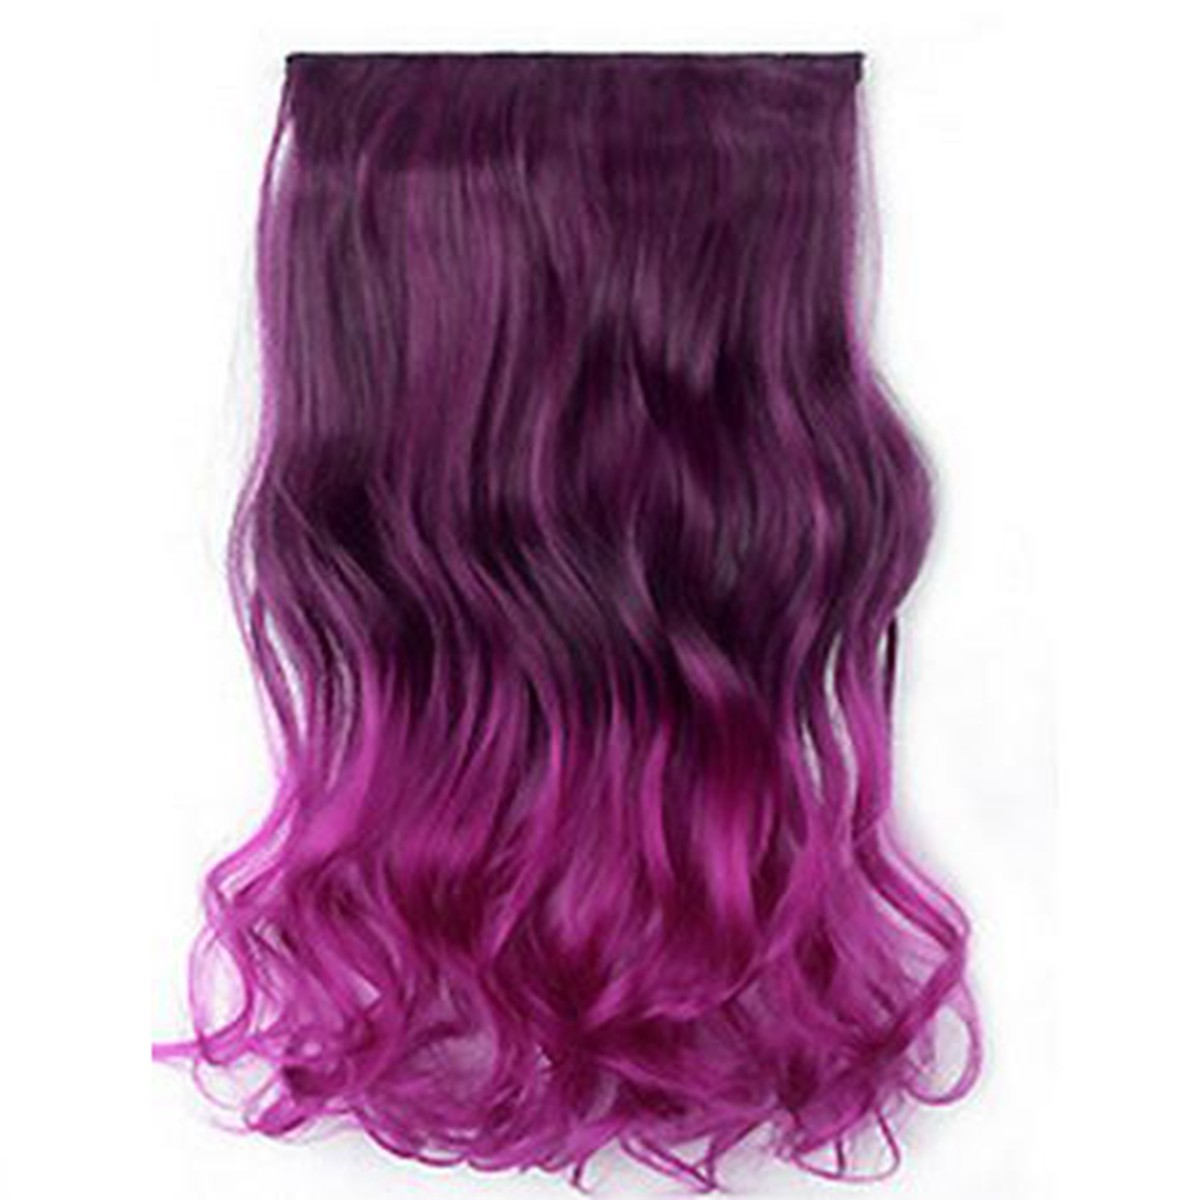 extensions cheveux clip perruque colore ondule boucle raide - Perruque Colore